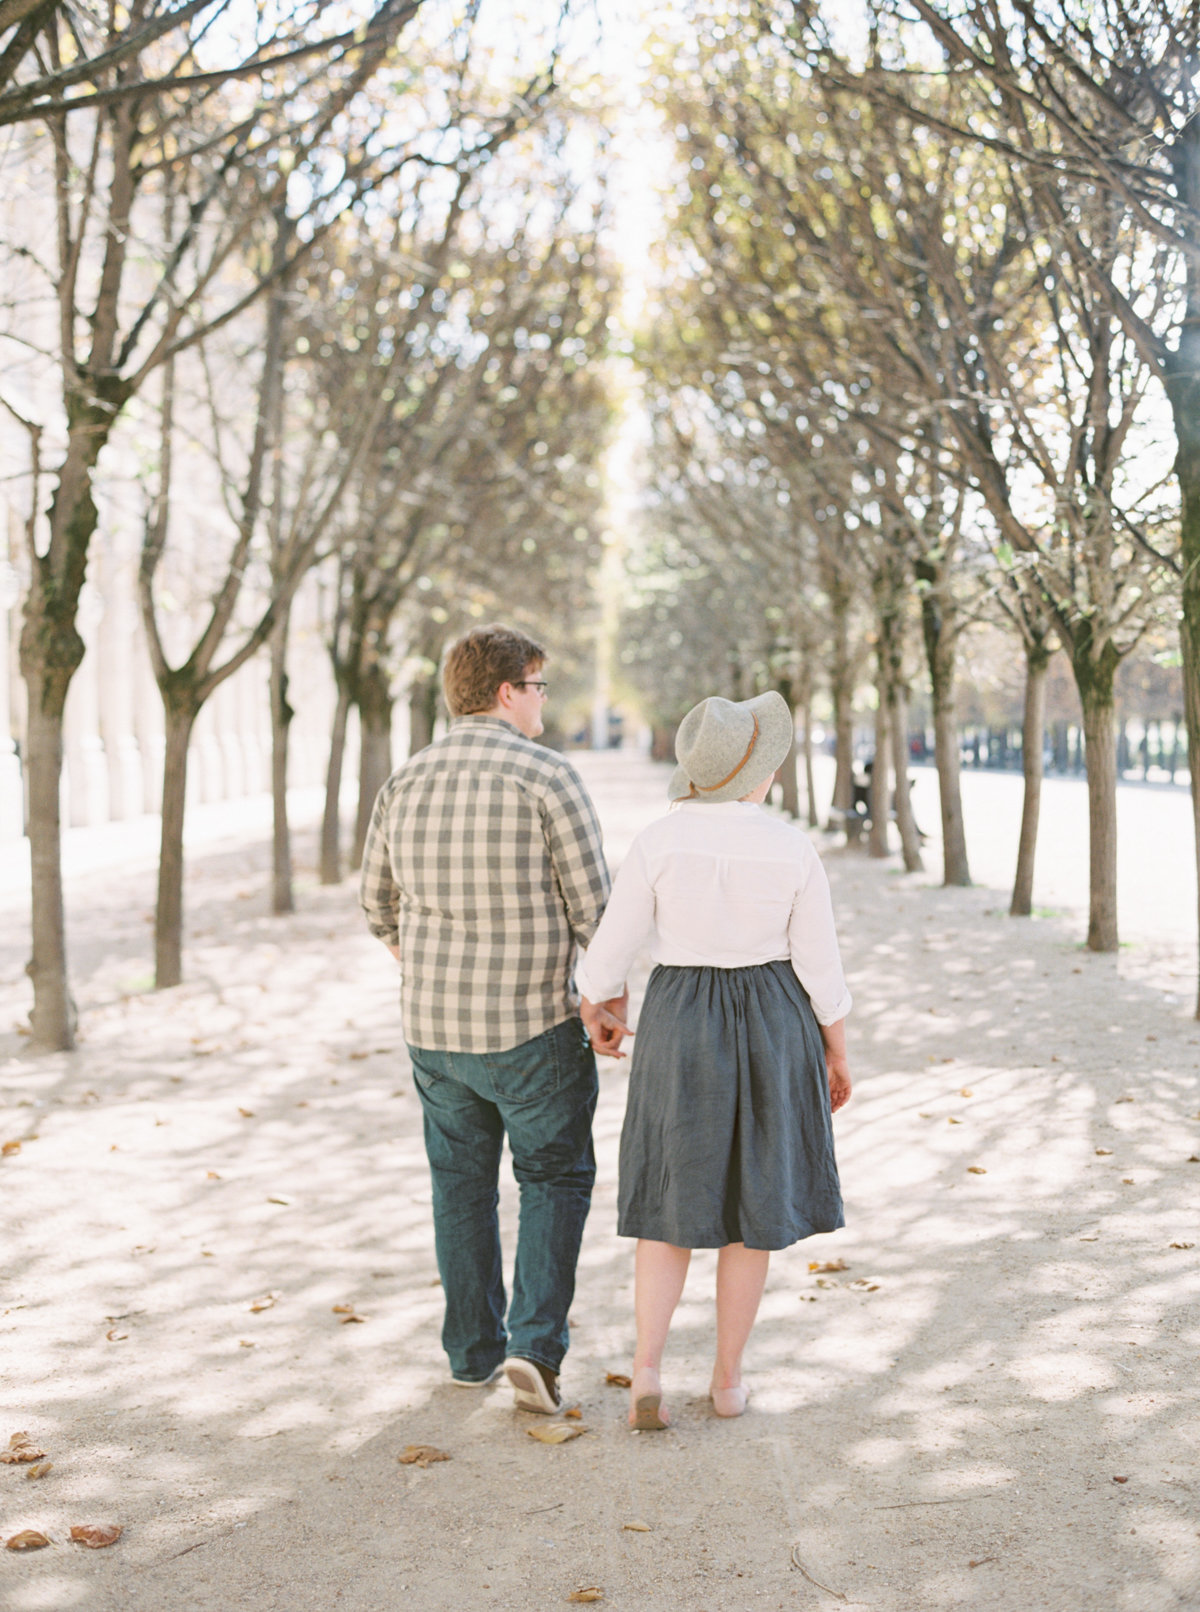 Paris-Wedding-Photographer-Film-Photographer-France-Molly-Carr-Photography-1